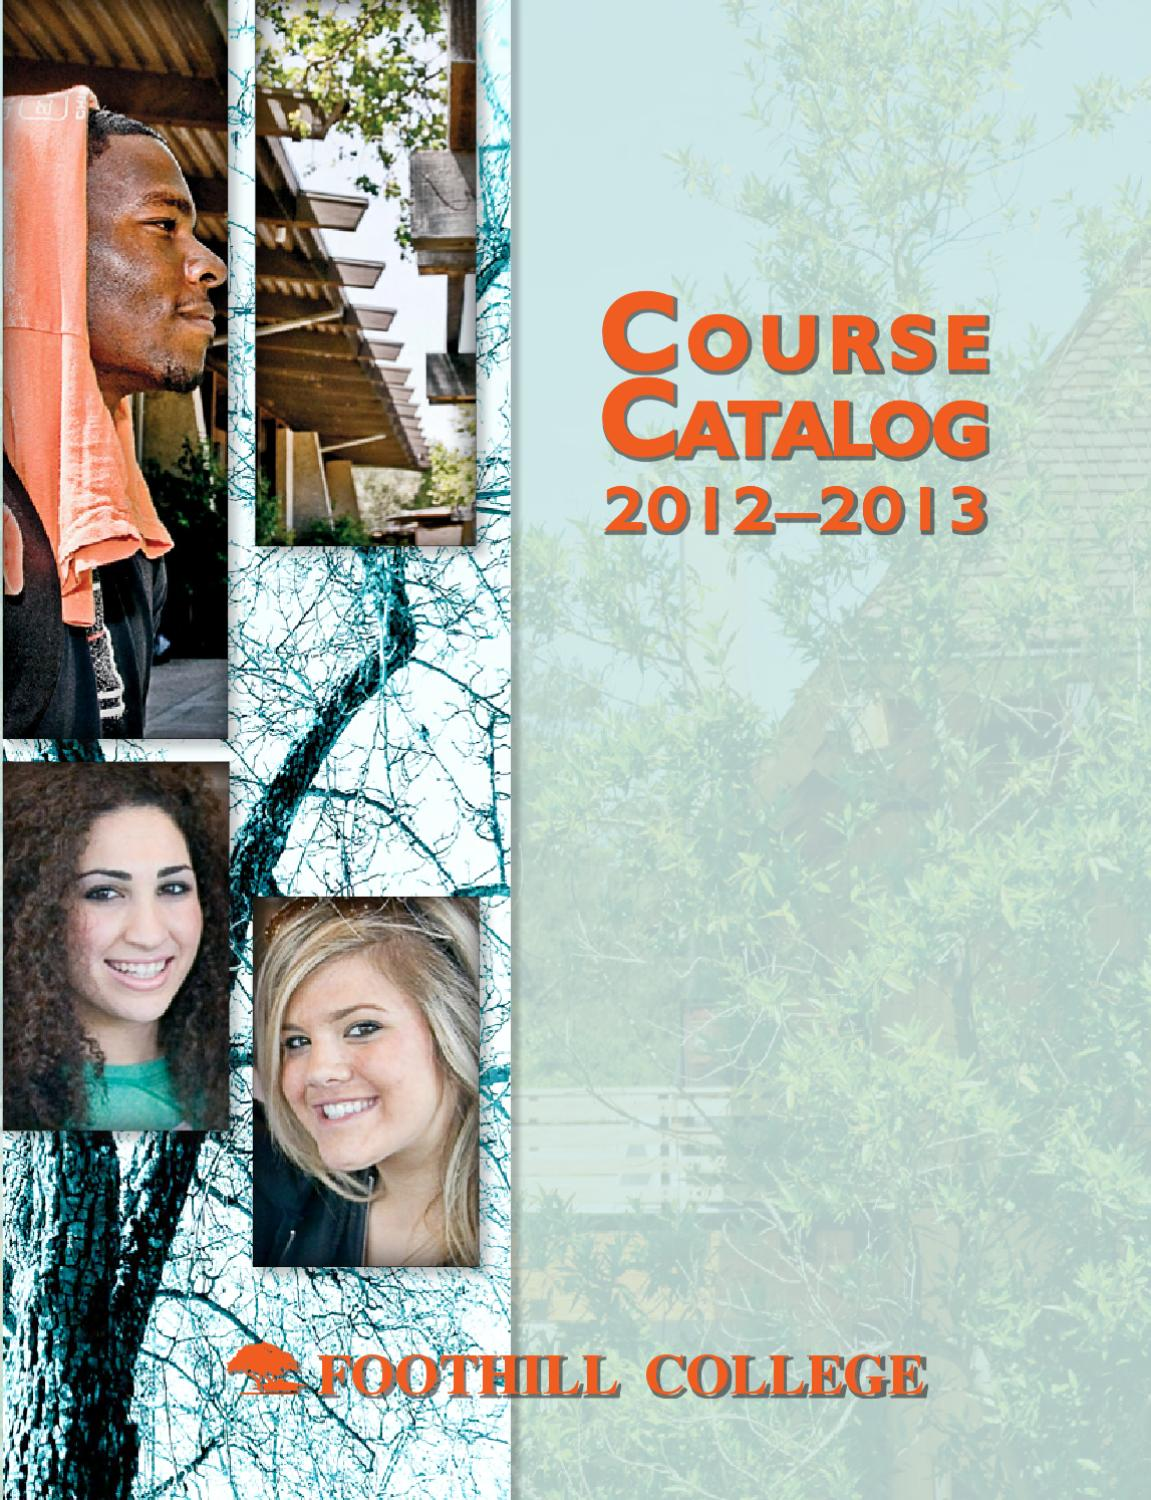 Foothill College Catalog 2012 13 By Foothill College Issuu